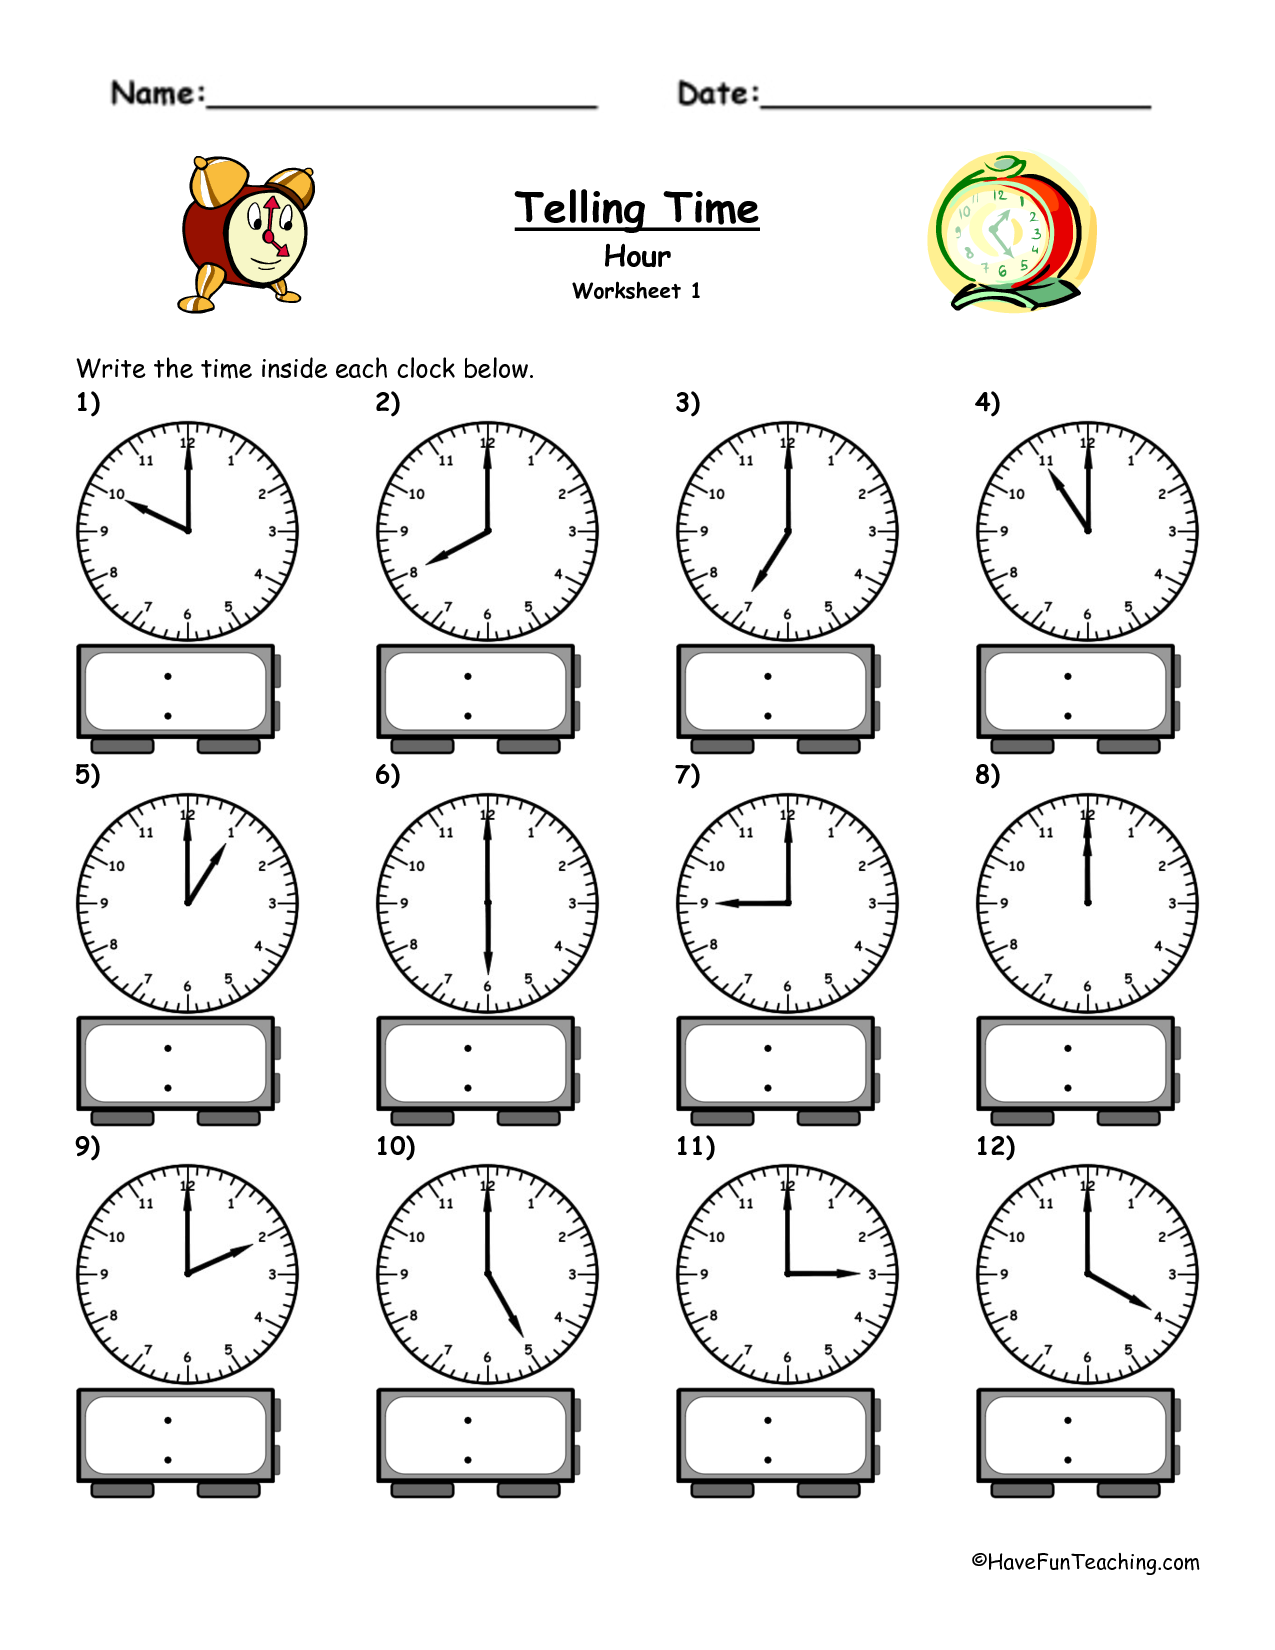 time worksheets Telling Time Worksheets – Telling Time Worksheets